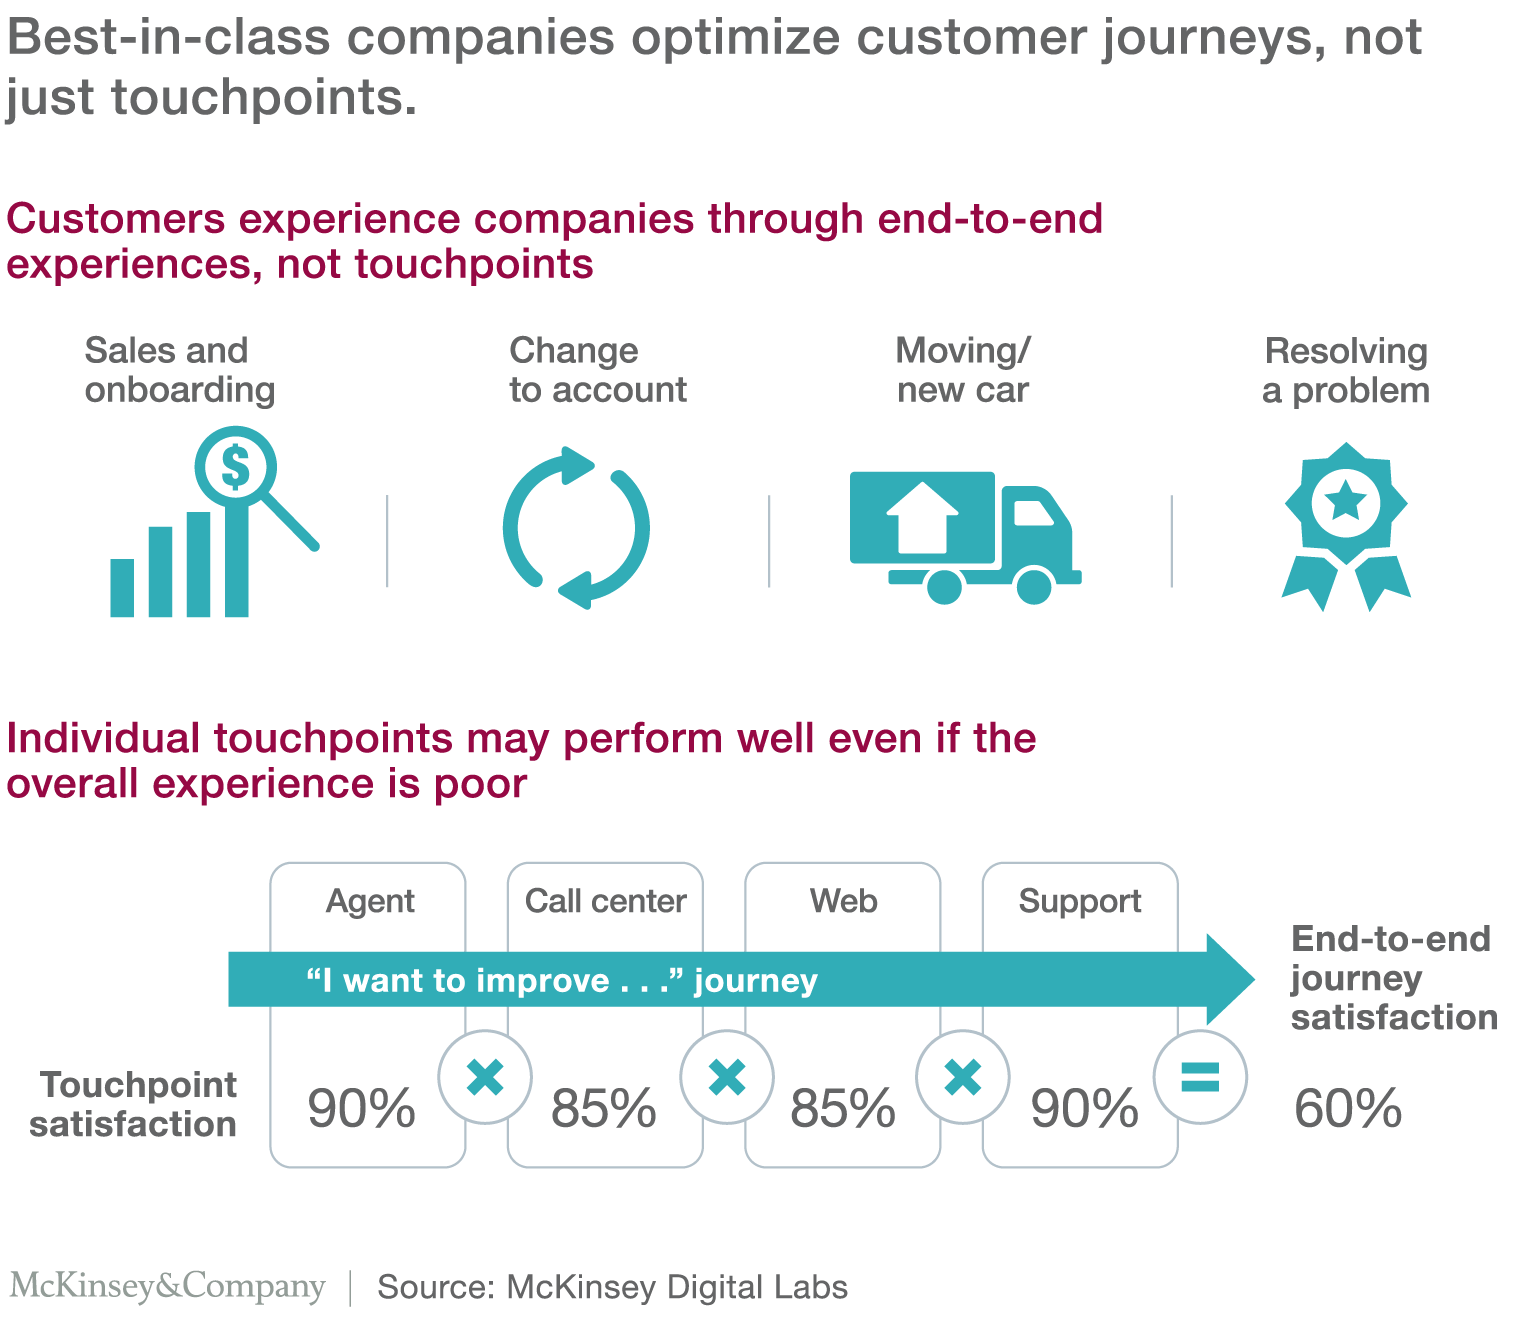 The CEO guide to customer experience | McKinsey & Company